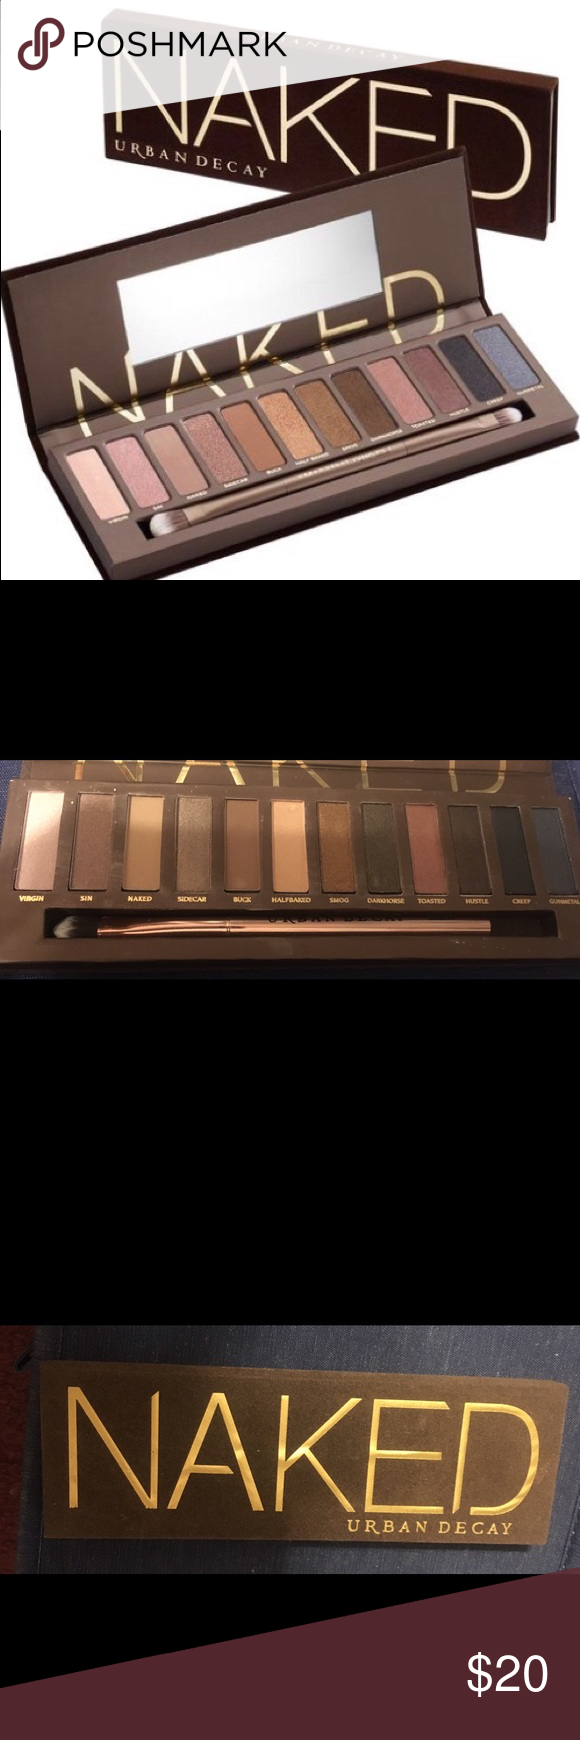 Naked brand Eyeshadow Palette Never been used- perfect condition eyeshadow palette with original brush included NAKED Makeup Eyeshadow